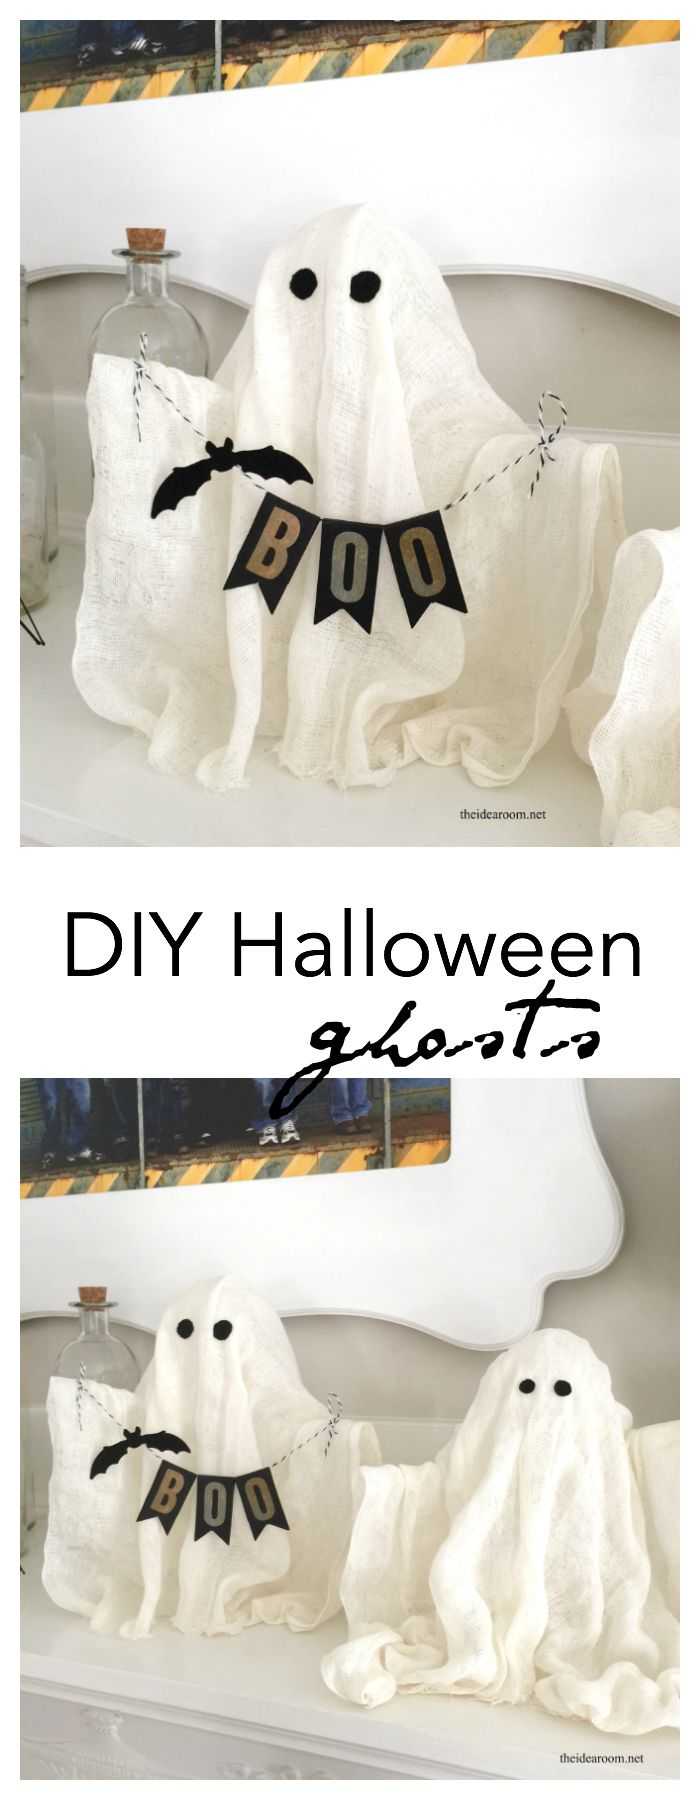 DIY-Halloween-Ghosts Create some fun DIY Halloween Ghosts for your Halloween Decor or Halloween Party this year. Easy Halloween craft tutorial made out of cheese cloth.